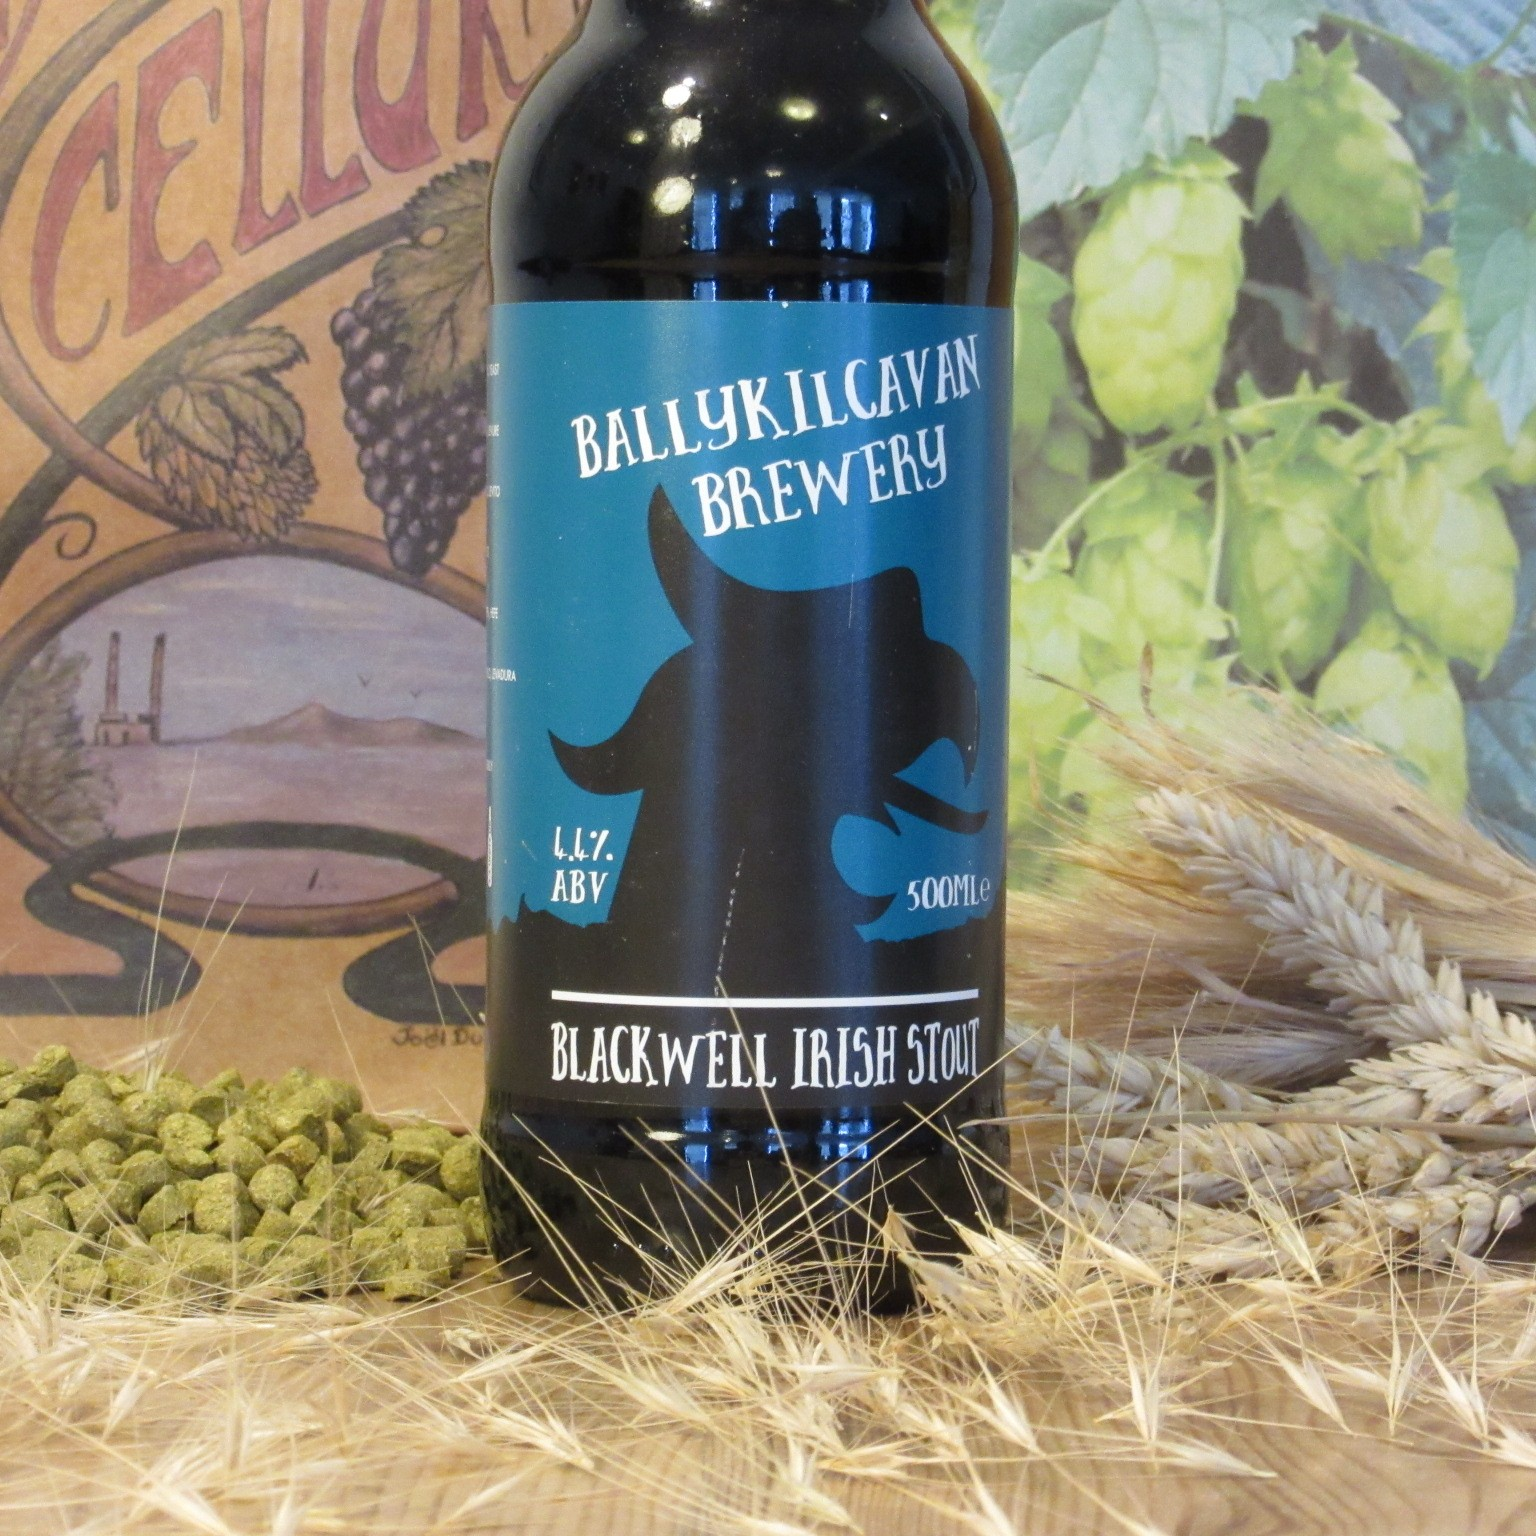 Ballykilcavan Blackwell Irish Stout